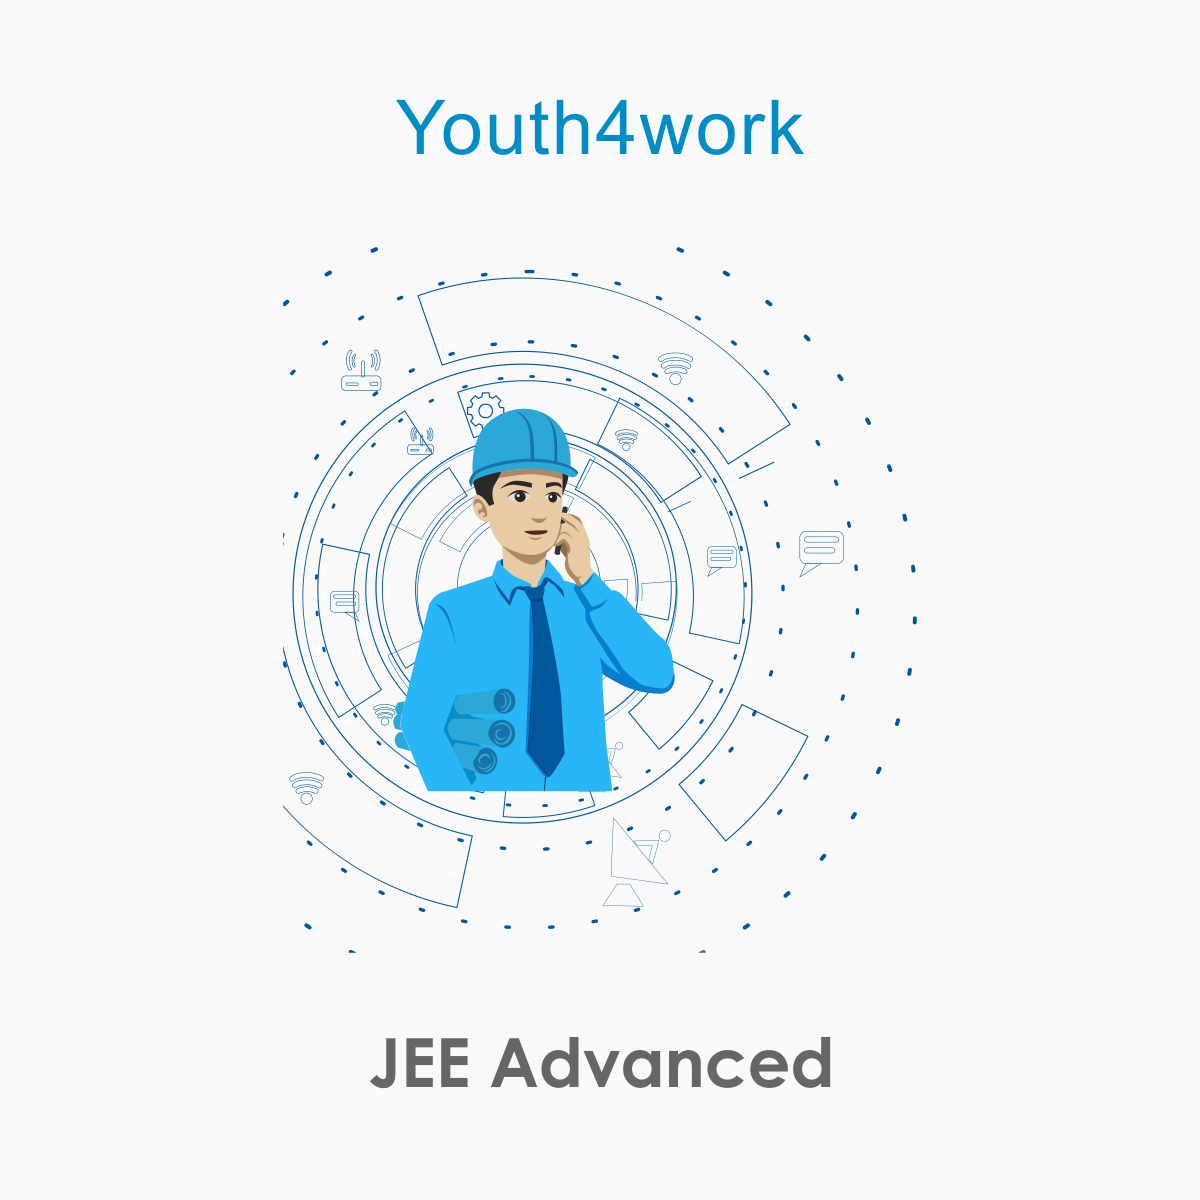 free JEE advanced online test series, jee advanced, jee advanced mock test, mock test youth4work, important JEE questions, online mock test, joint entrance exam, jee advance questions